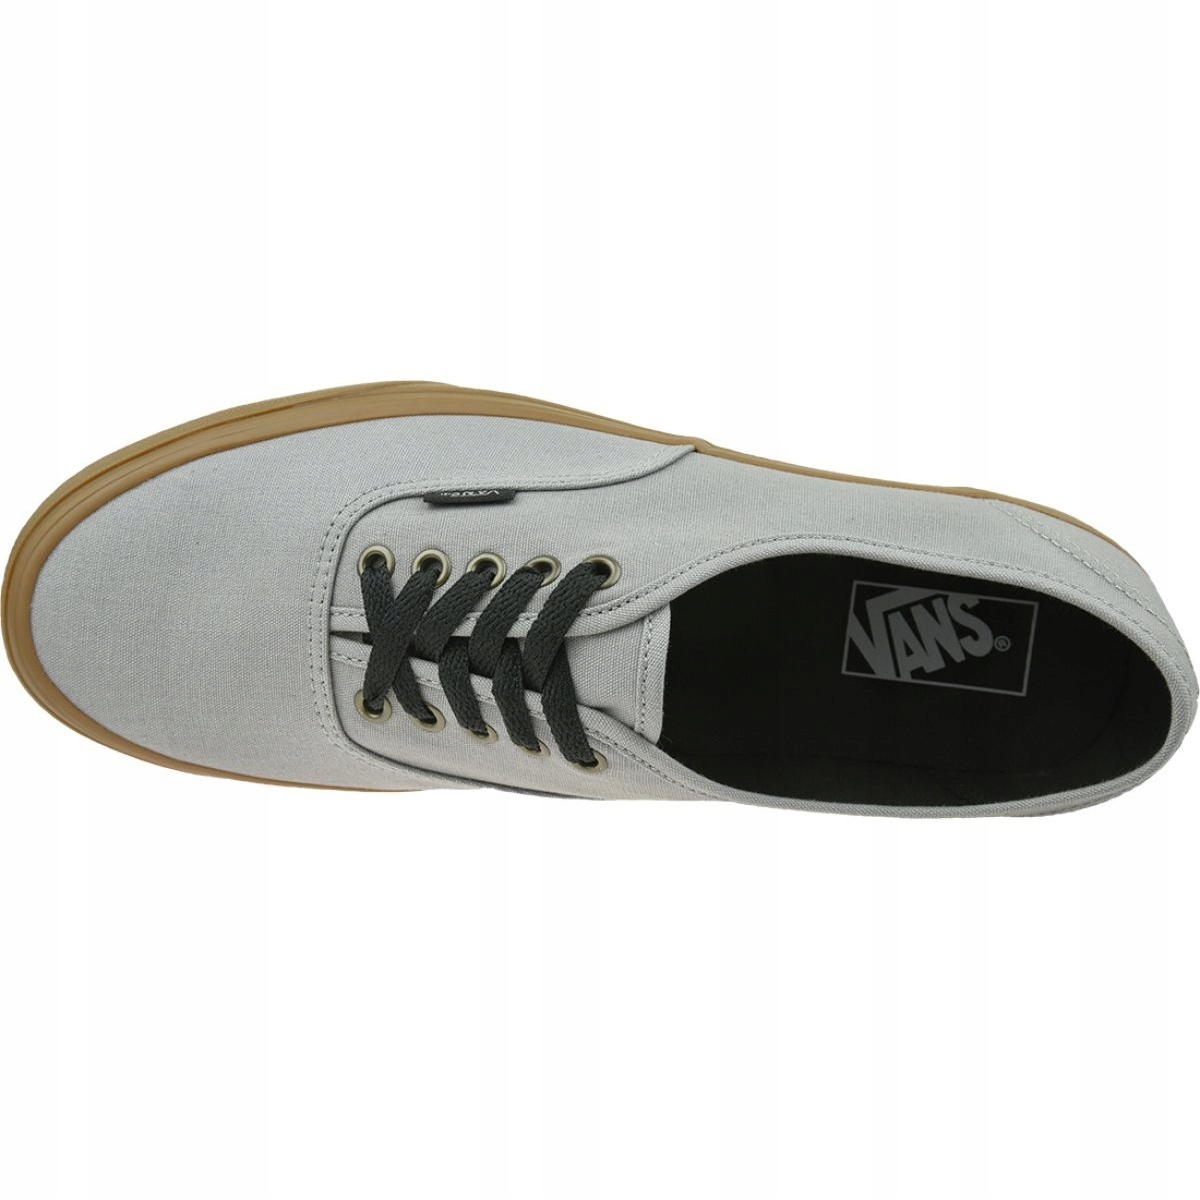 Buty Vans Ua Authentic M VN0A38EMU401 szare